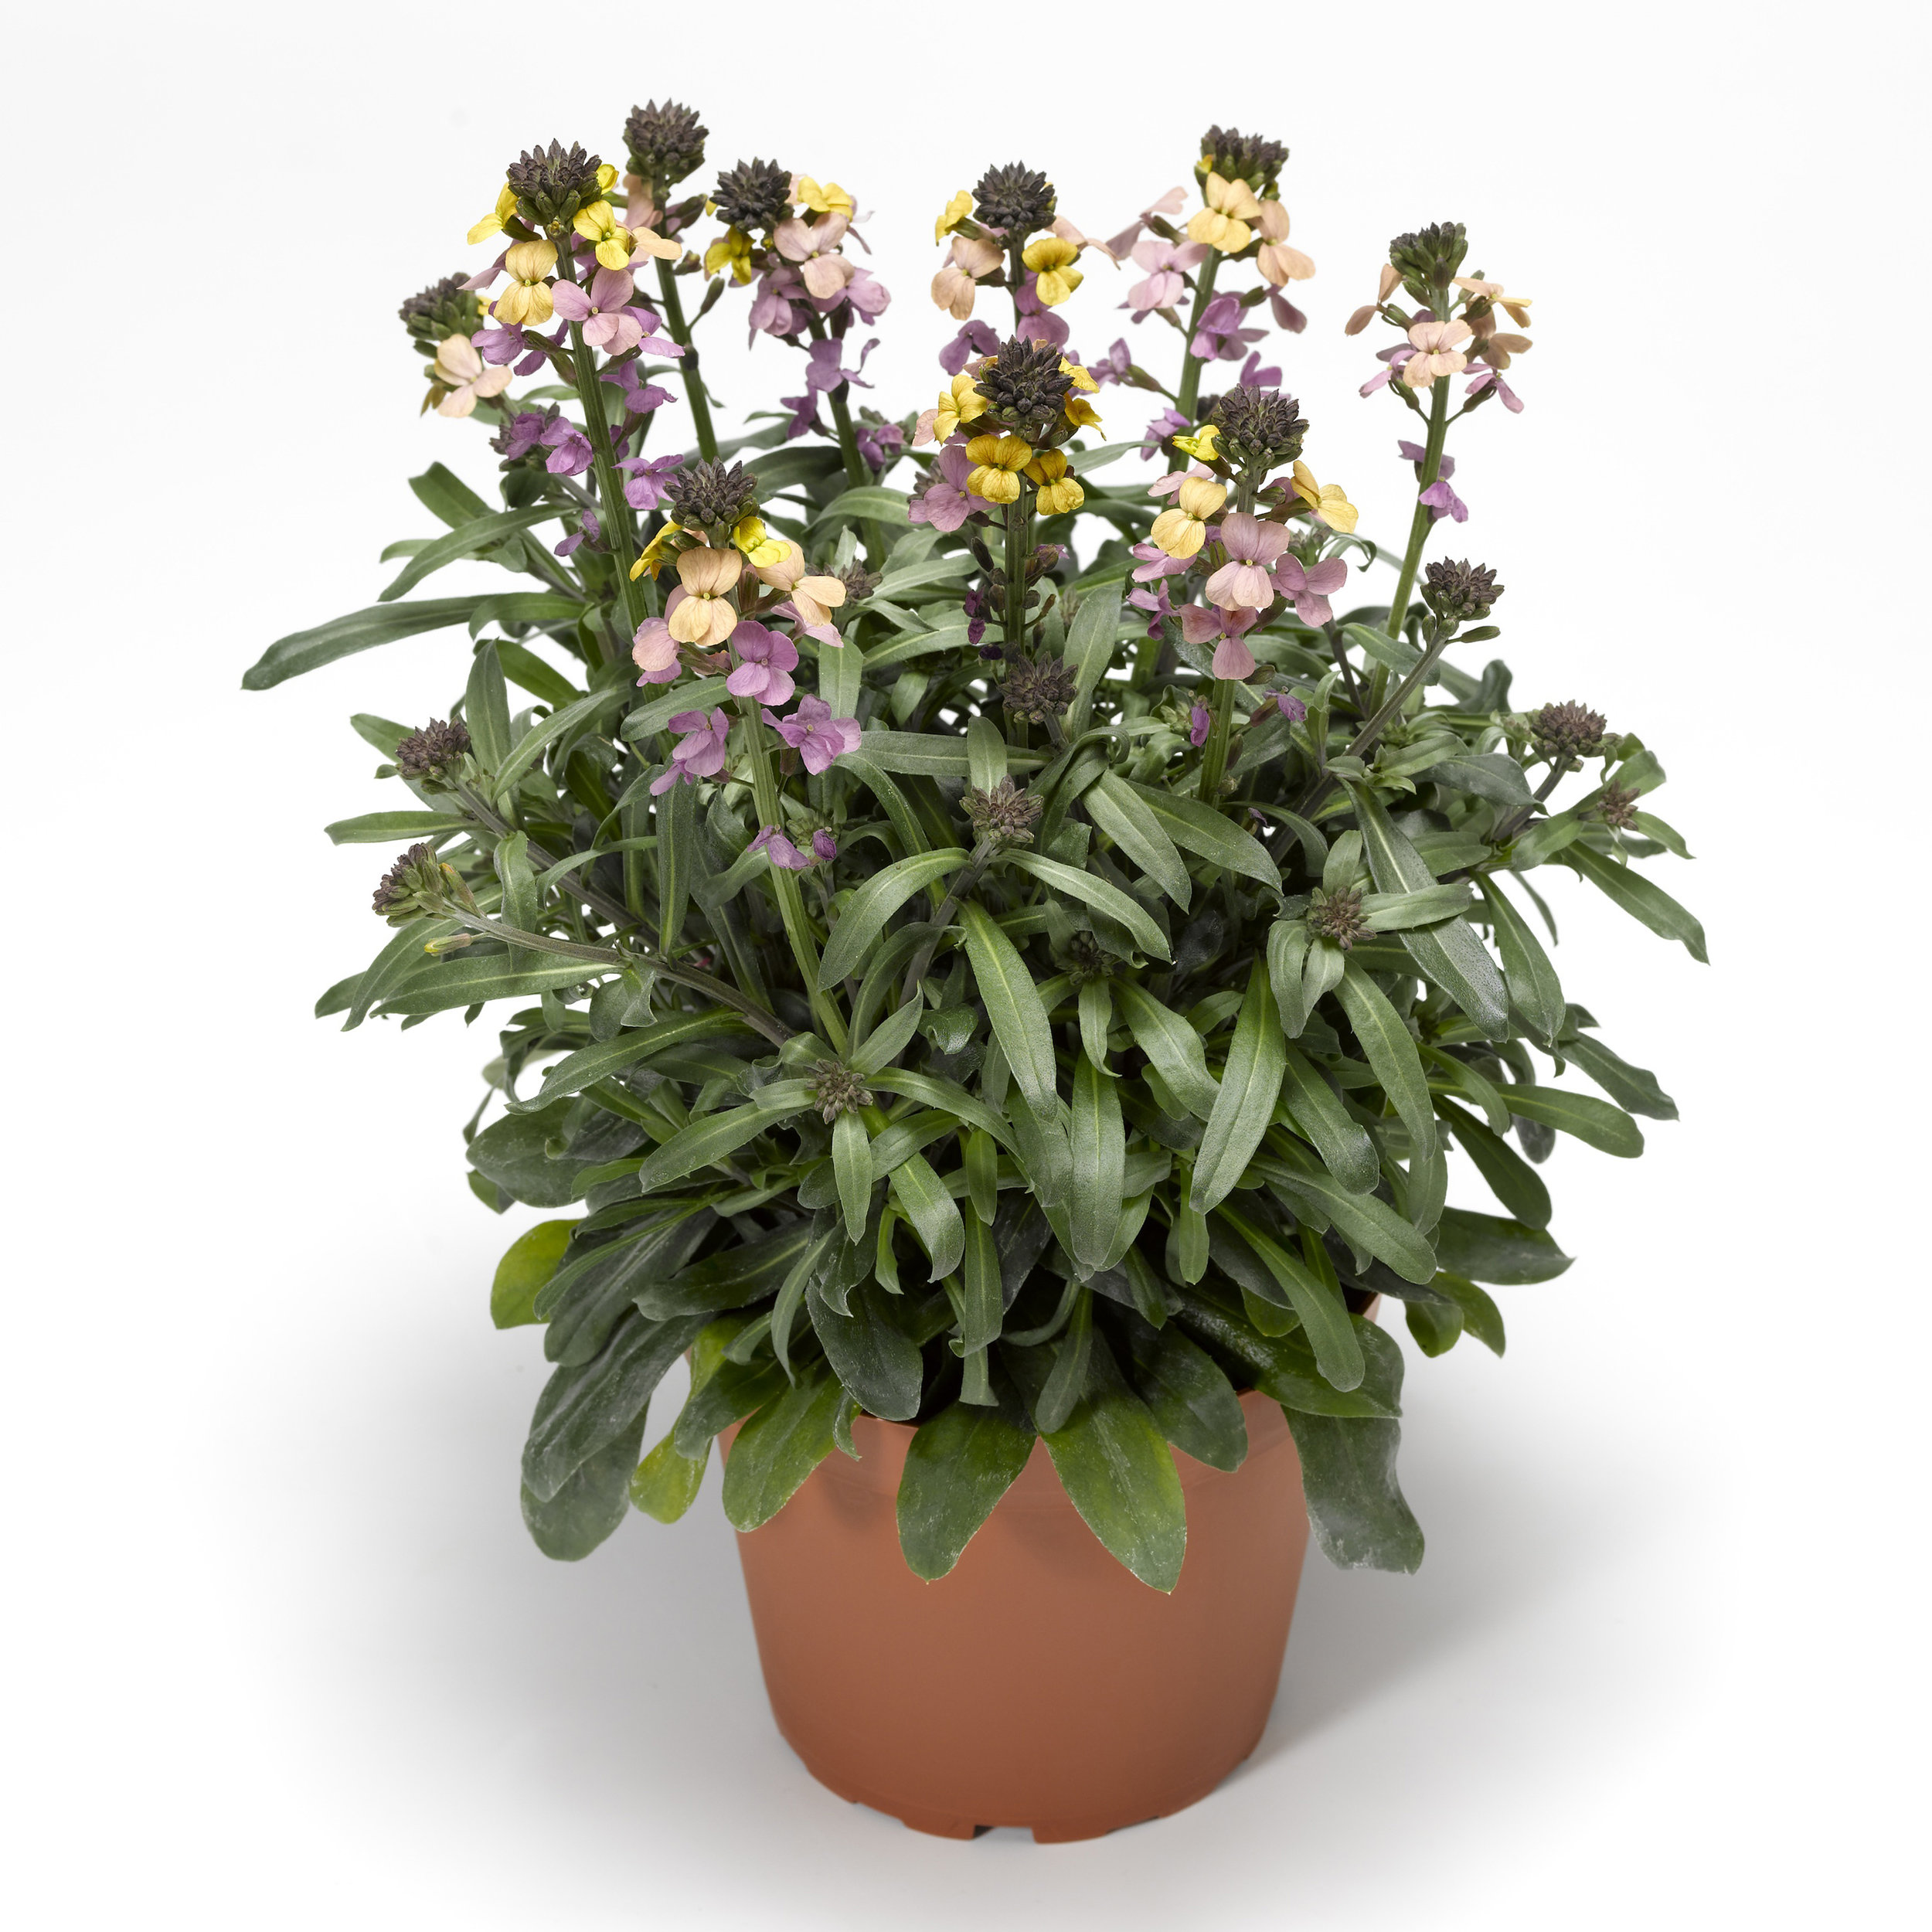 HR_Vegetative_Erysimum_Super_Bowl™_Super_Bowl™_Sunset_70028052_2.jpg